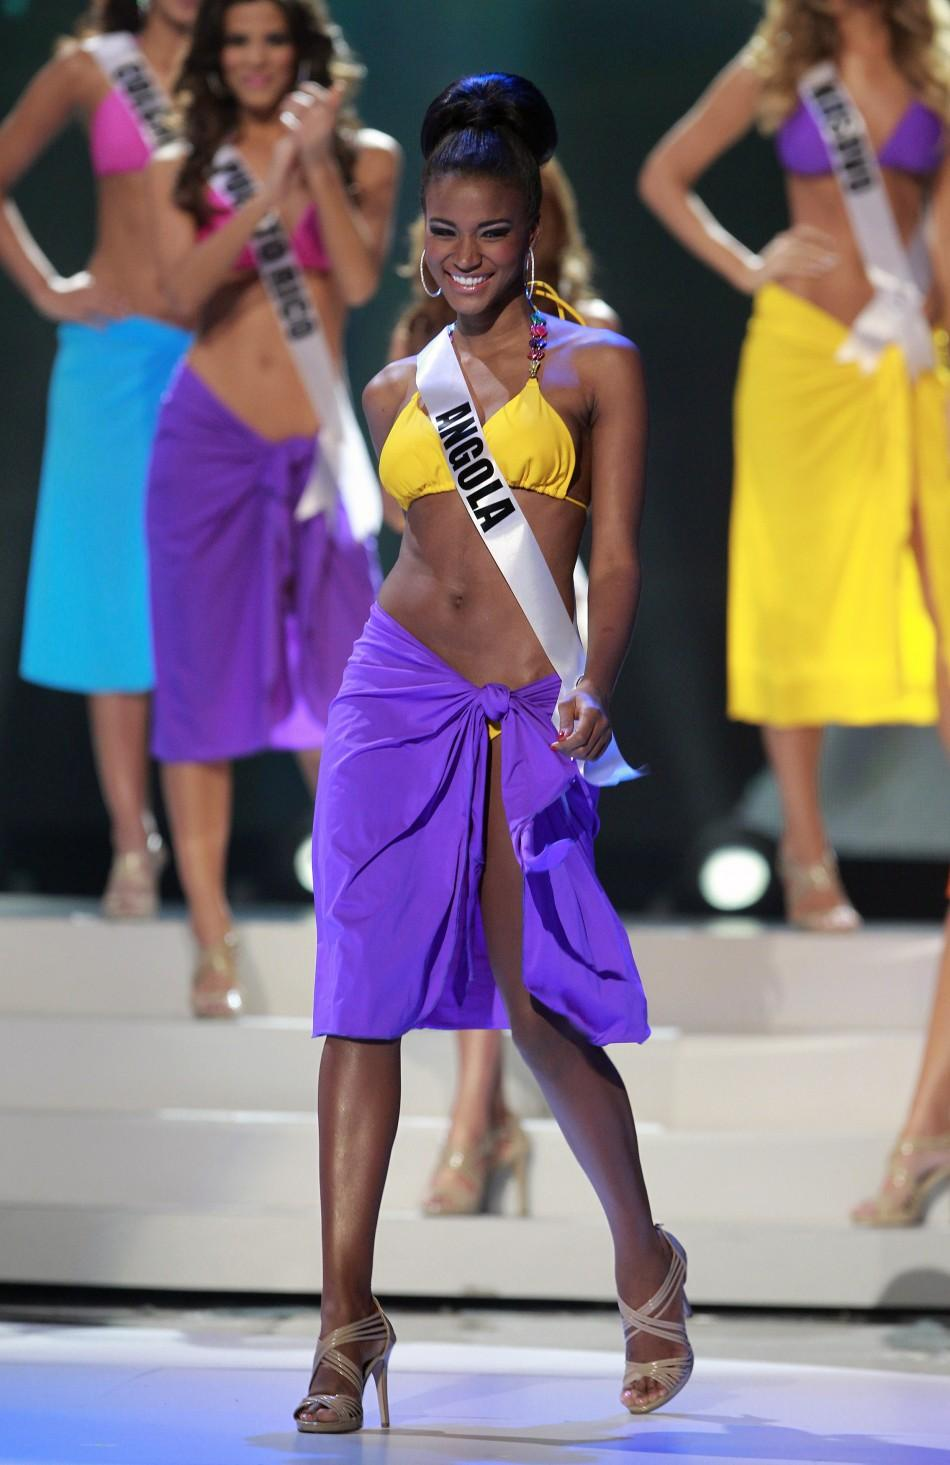 Miss Angola Leila Lopes steps forward after being chosen among the final ten contestants of the Miss Universe 2011 pageant in Sao Paulo